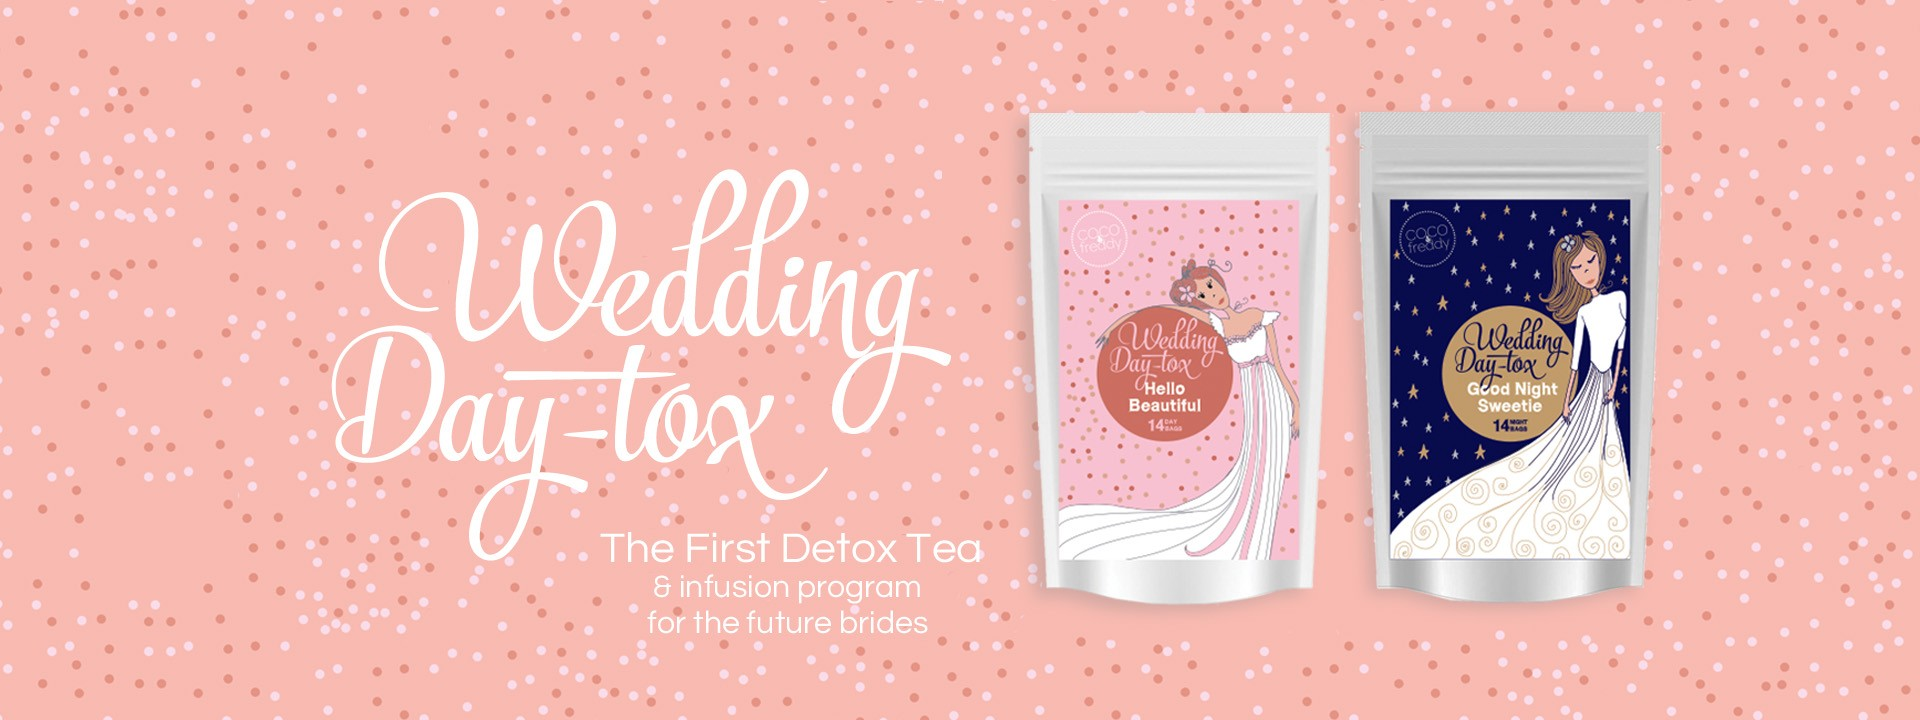 The Wedding Day-tox program by COCO&freddy is composed by a booster tea in the morning, Hell Beautiful, and a relaxing infusion at night called Good Night Sweetie.